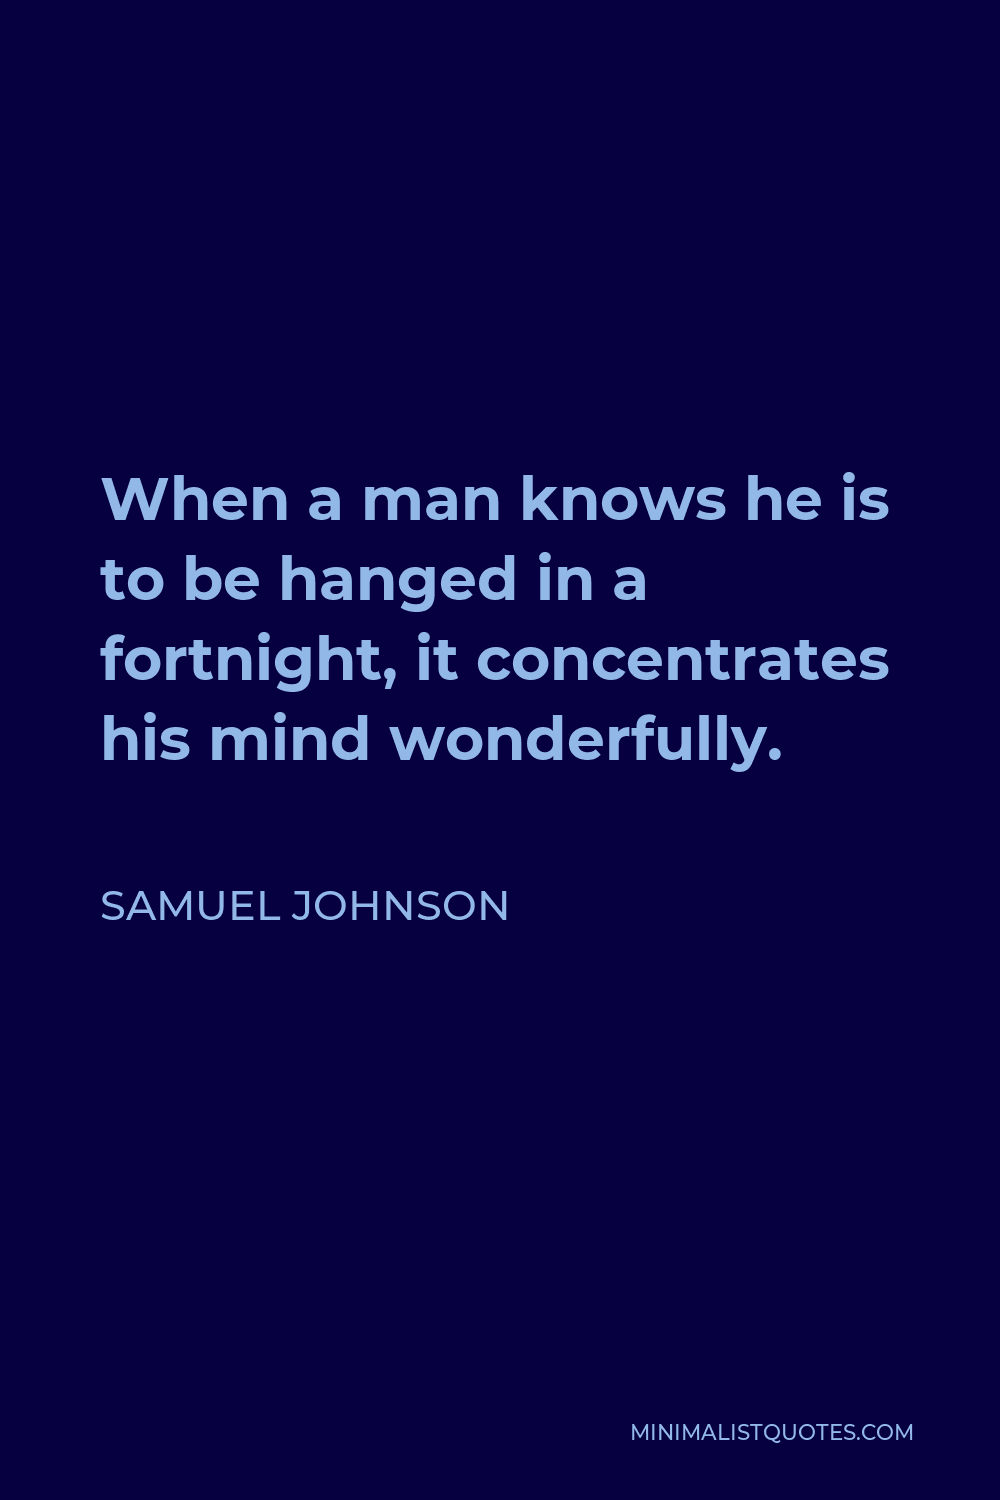 Samuel Johnson Quote - When a man knows he is to be hanged in a fortnight, it concentrates his mind wonderfully.